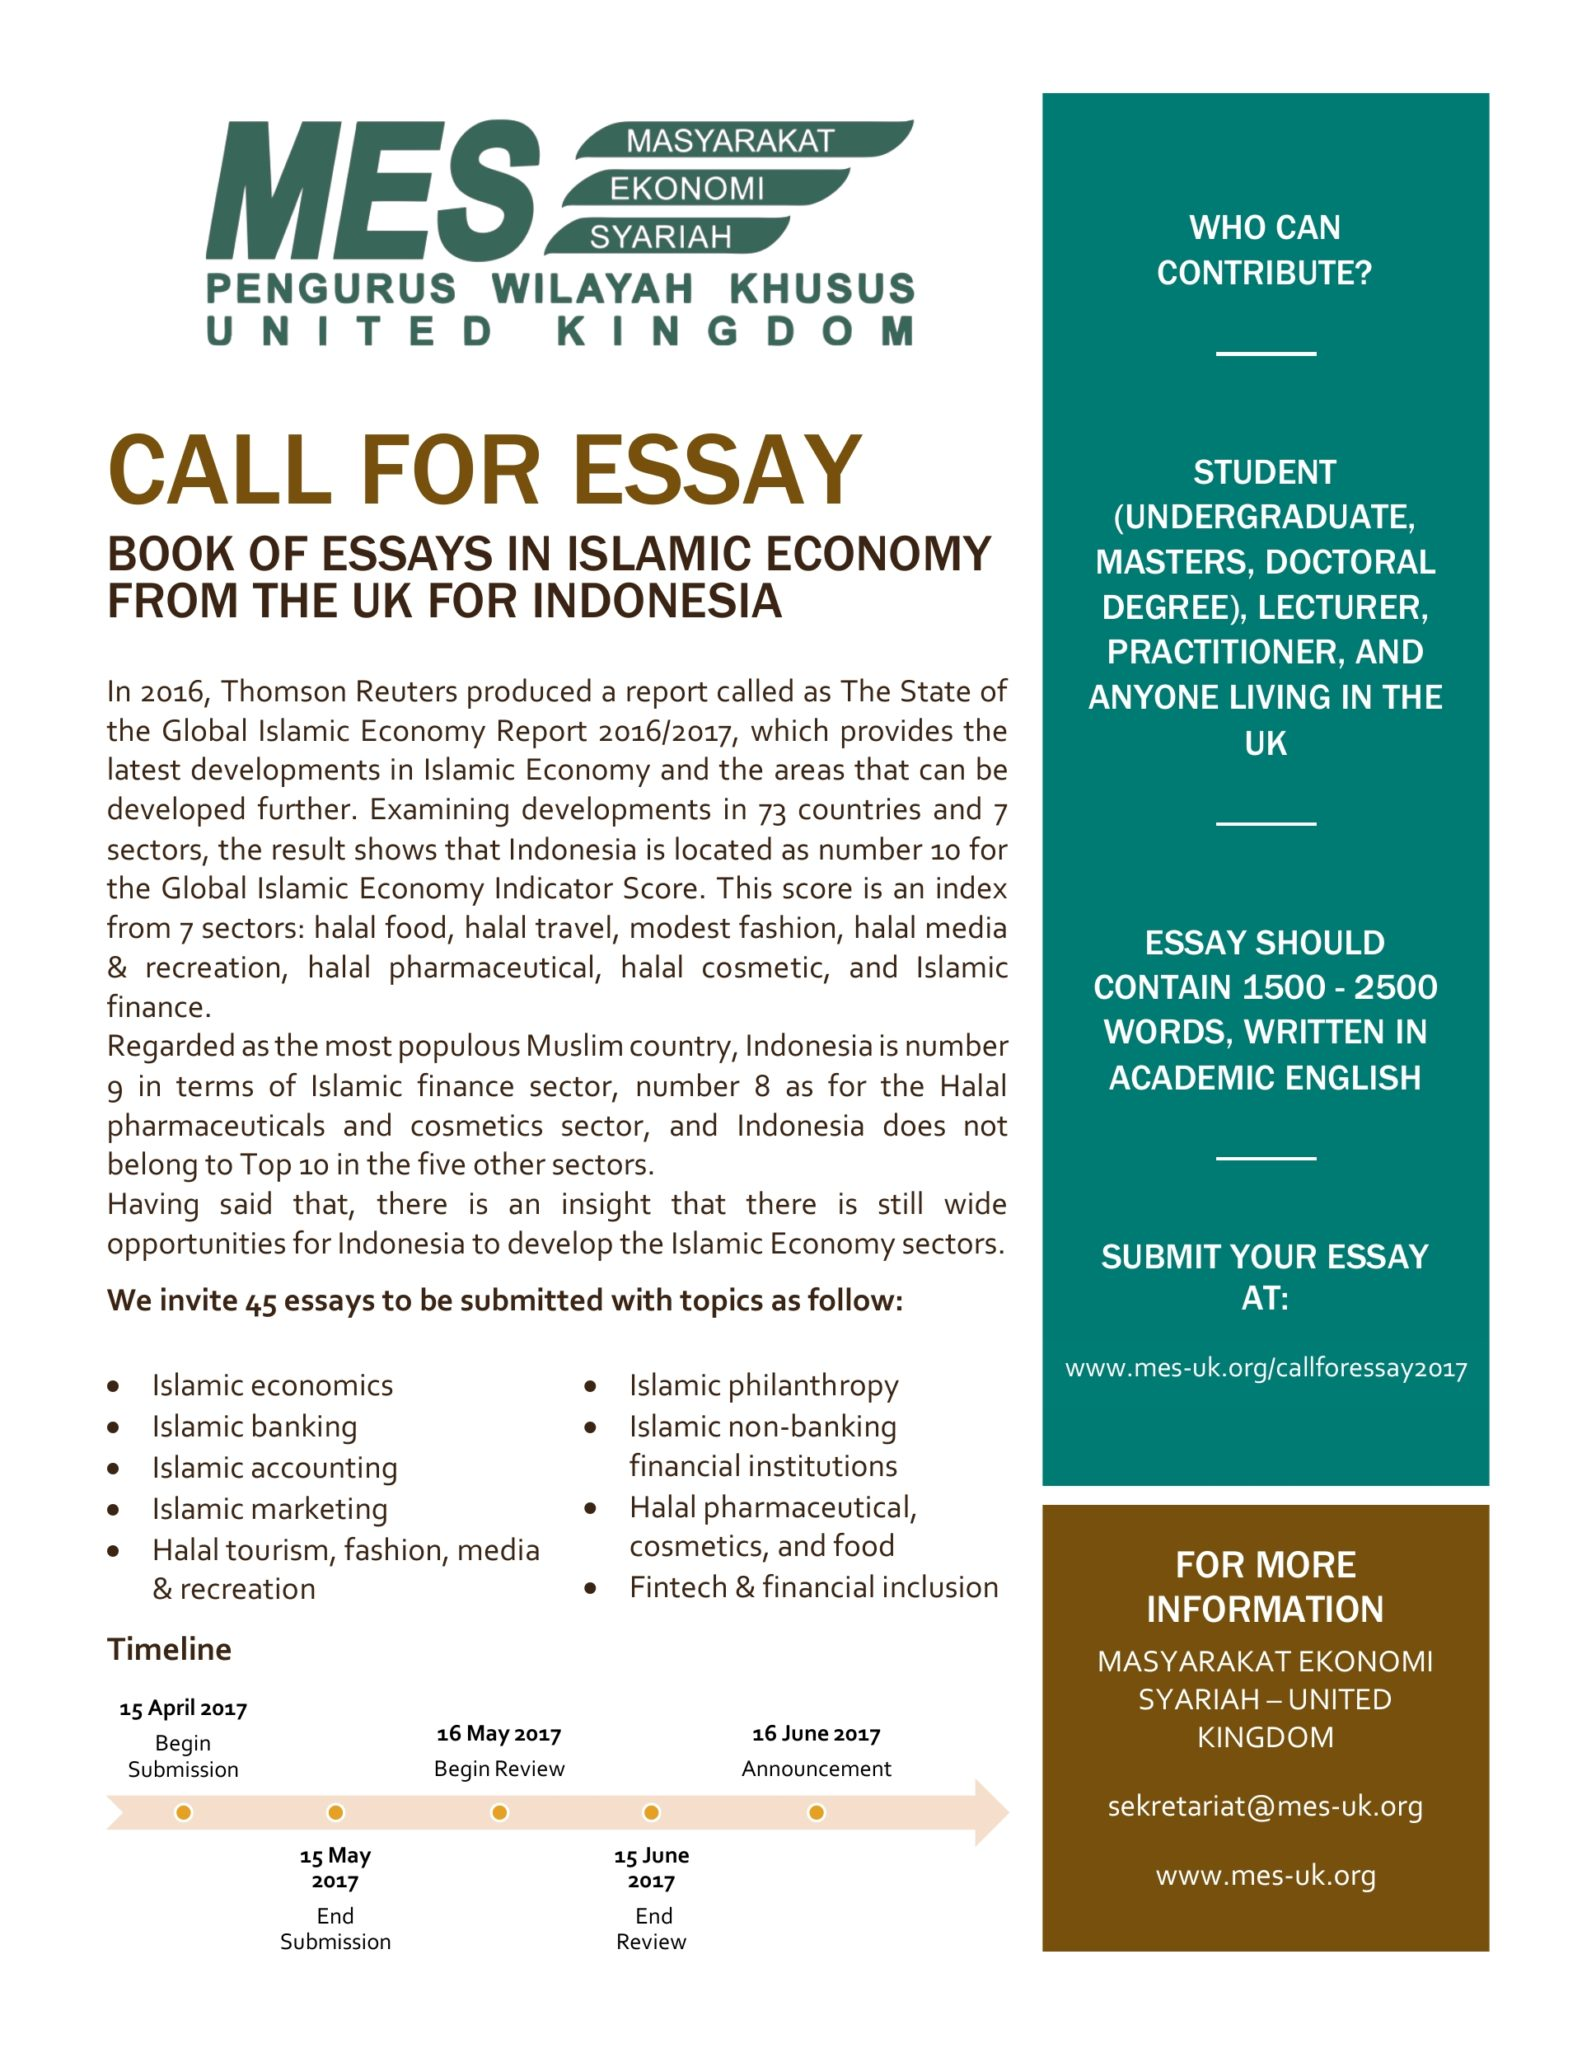 call for essay book of essays in islamic economy from the uk for call for essay book of essays in islamic economy from the uk for